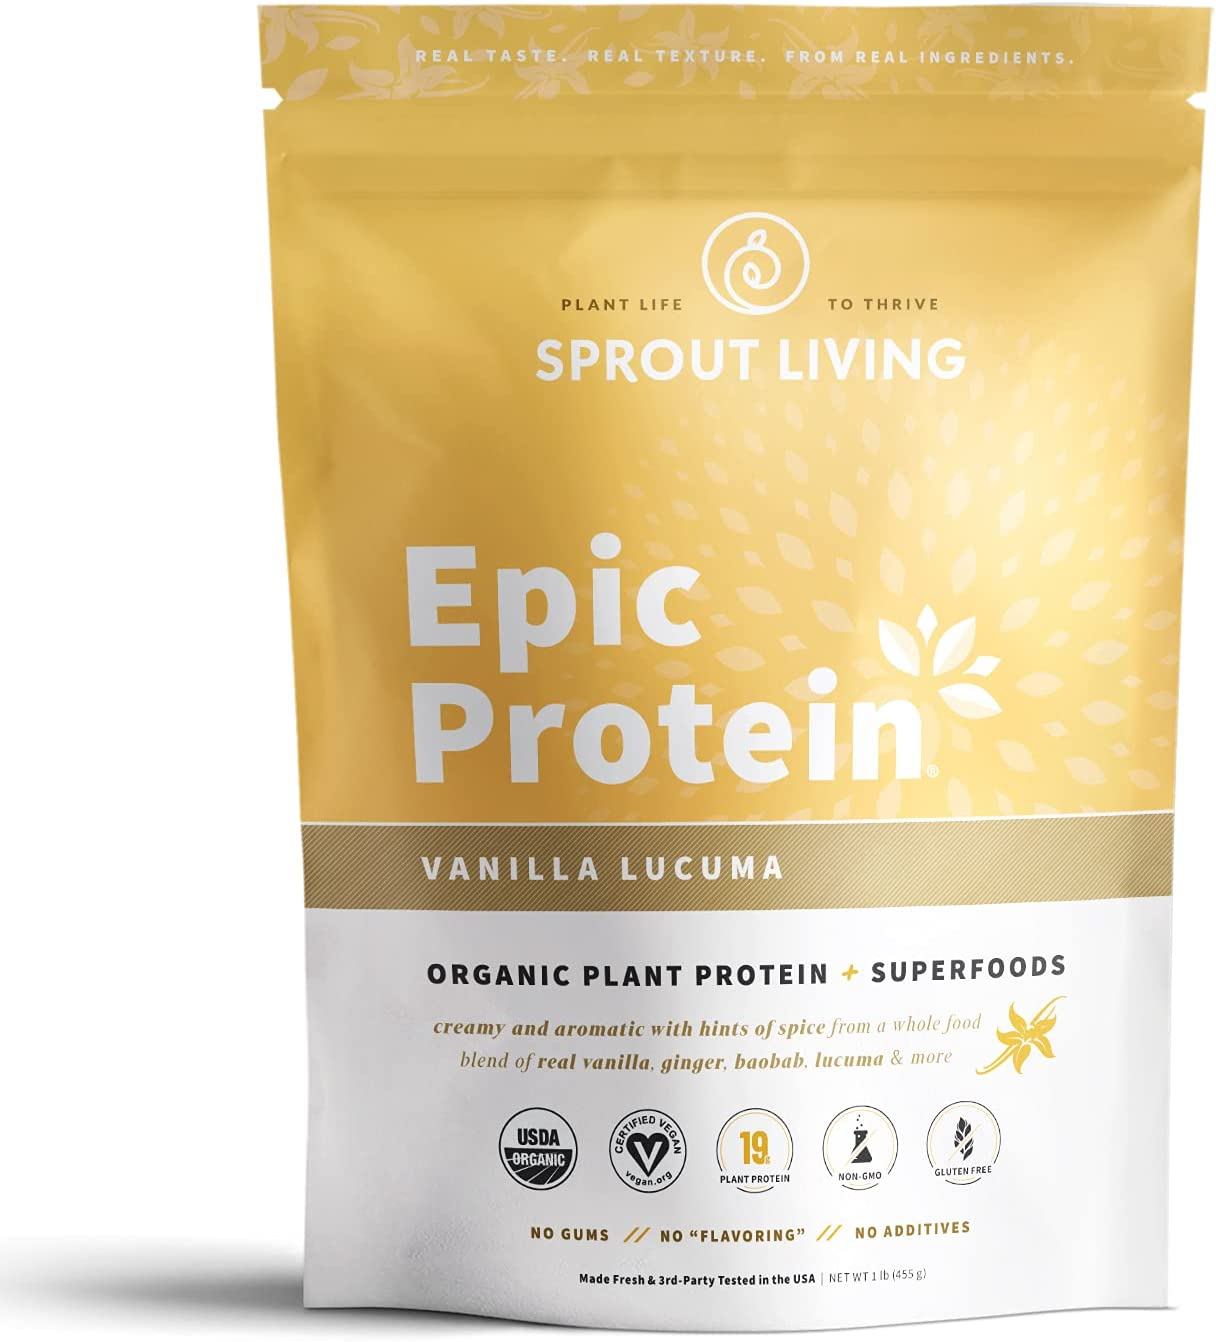 Sprout Living's Epic Protein P Recommended Superfoods Plant Limited Special Price Based